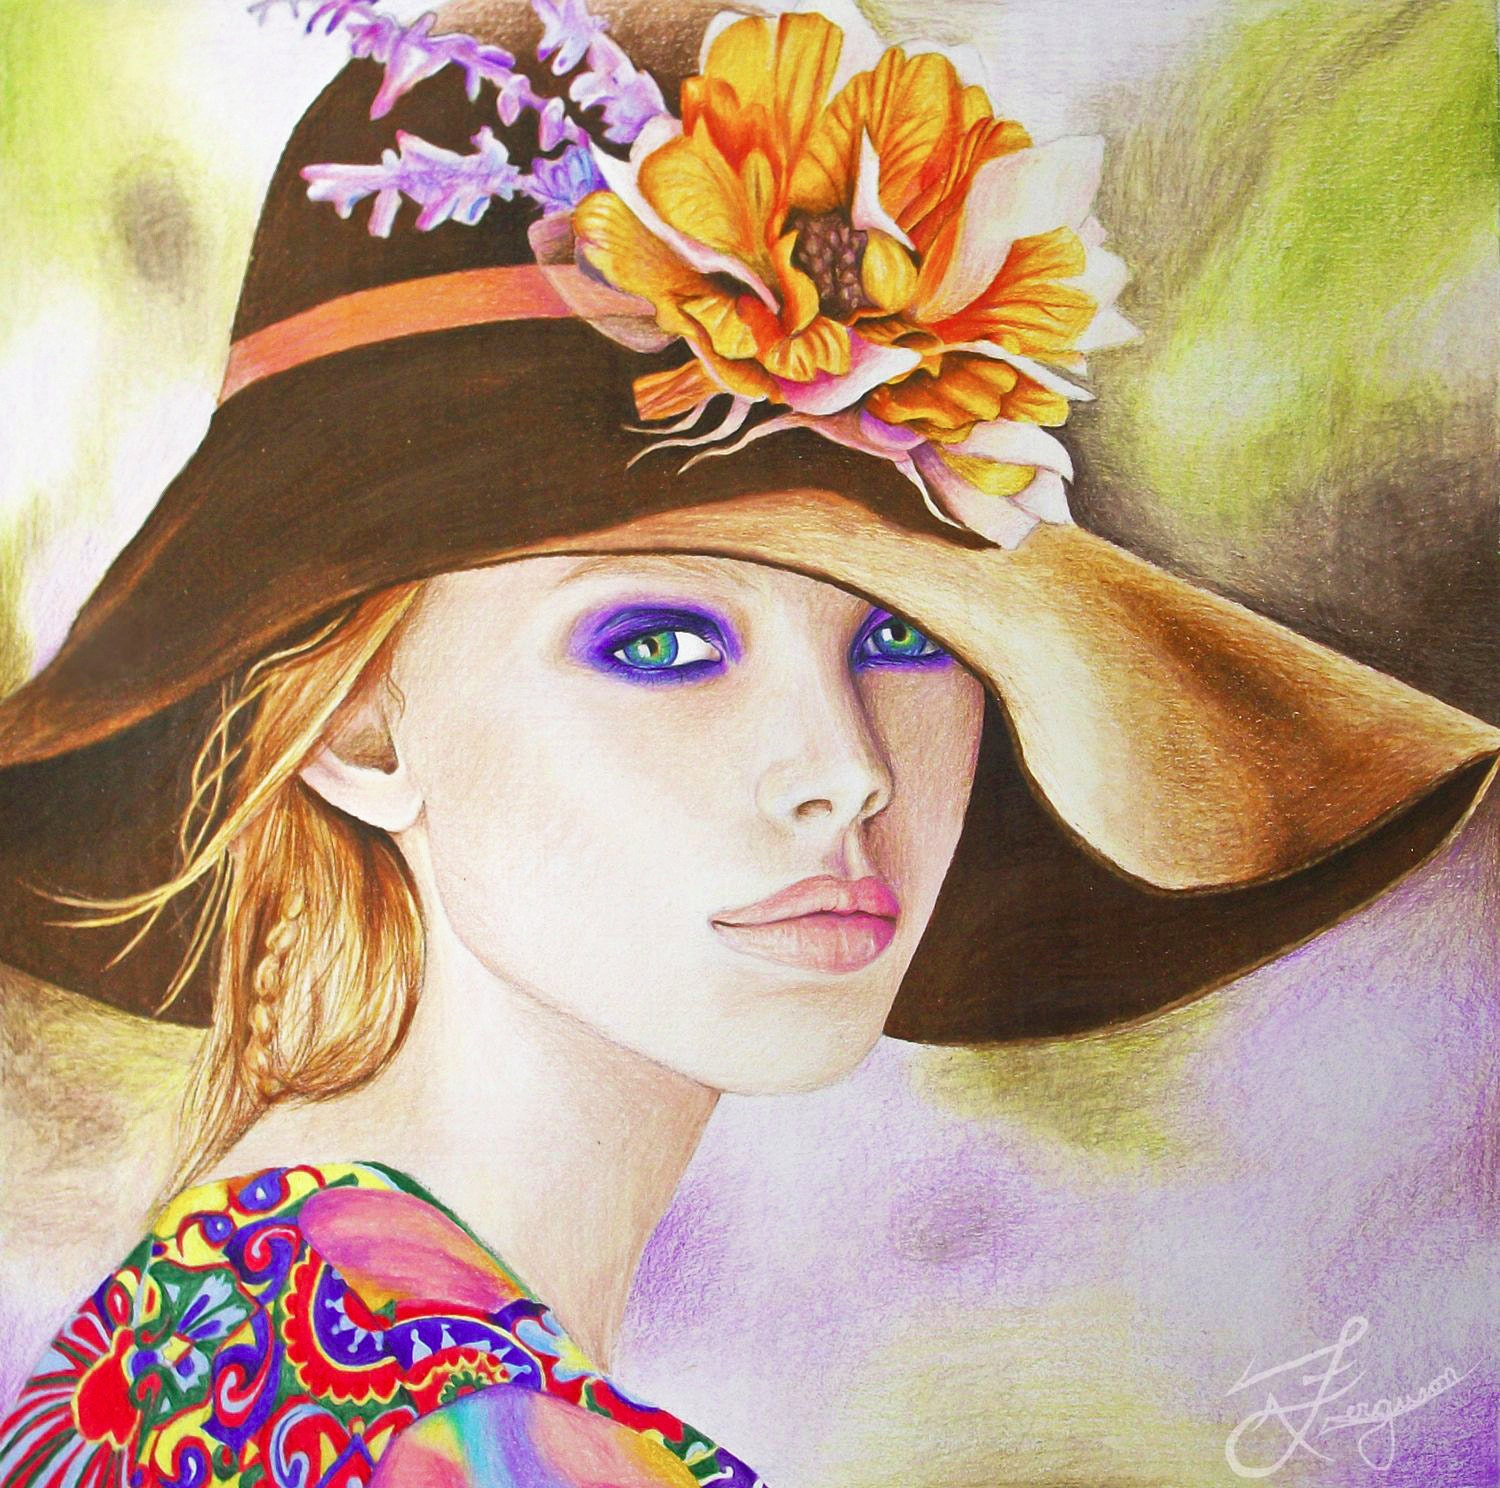 Renewal - Original Art giclee print - boho chic, spring, artwork, home decor - Lady in hat, poppy, colorful - LainyArt